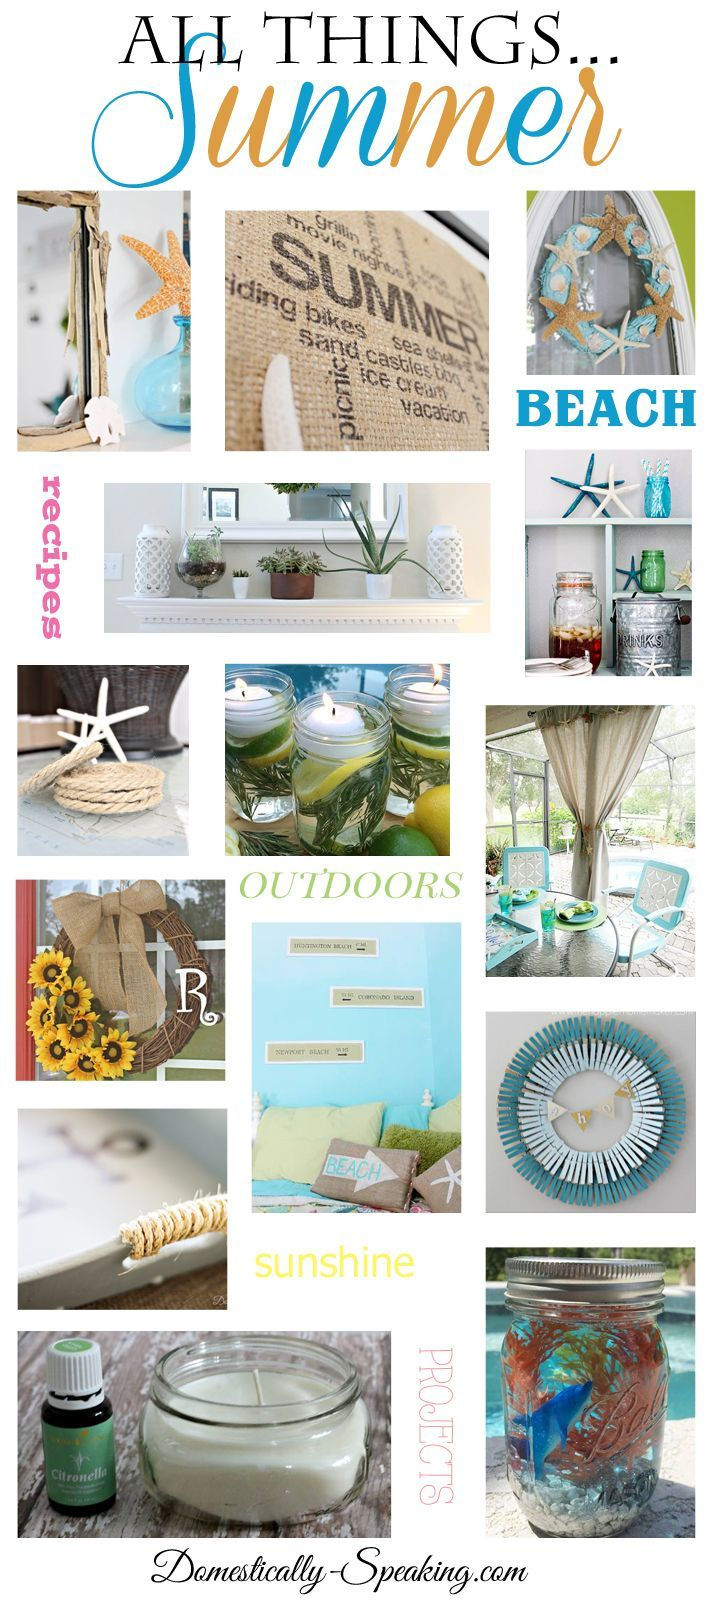 All Things Summer Over 100 Summer Recipes Crafts And Diy Summer Crafts Crafts Summer Projects